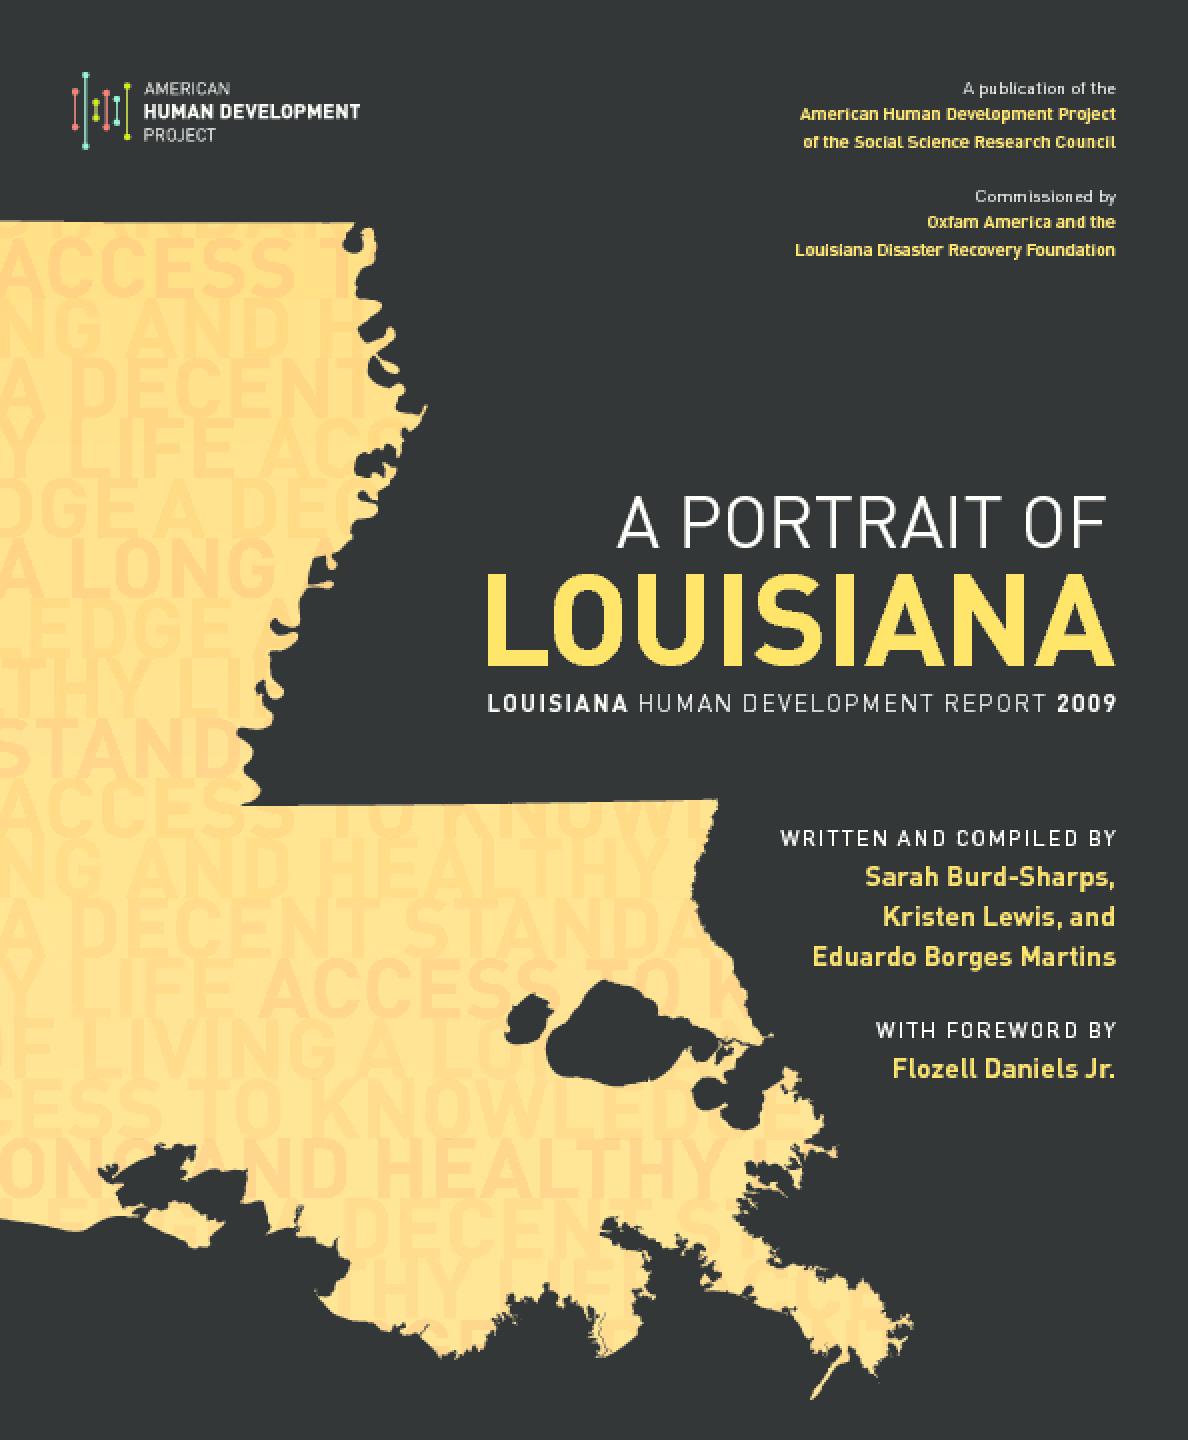 A Portrait of Louisiana: Louisiana Human Development Report 2009